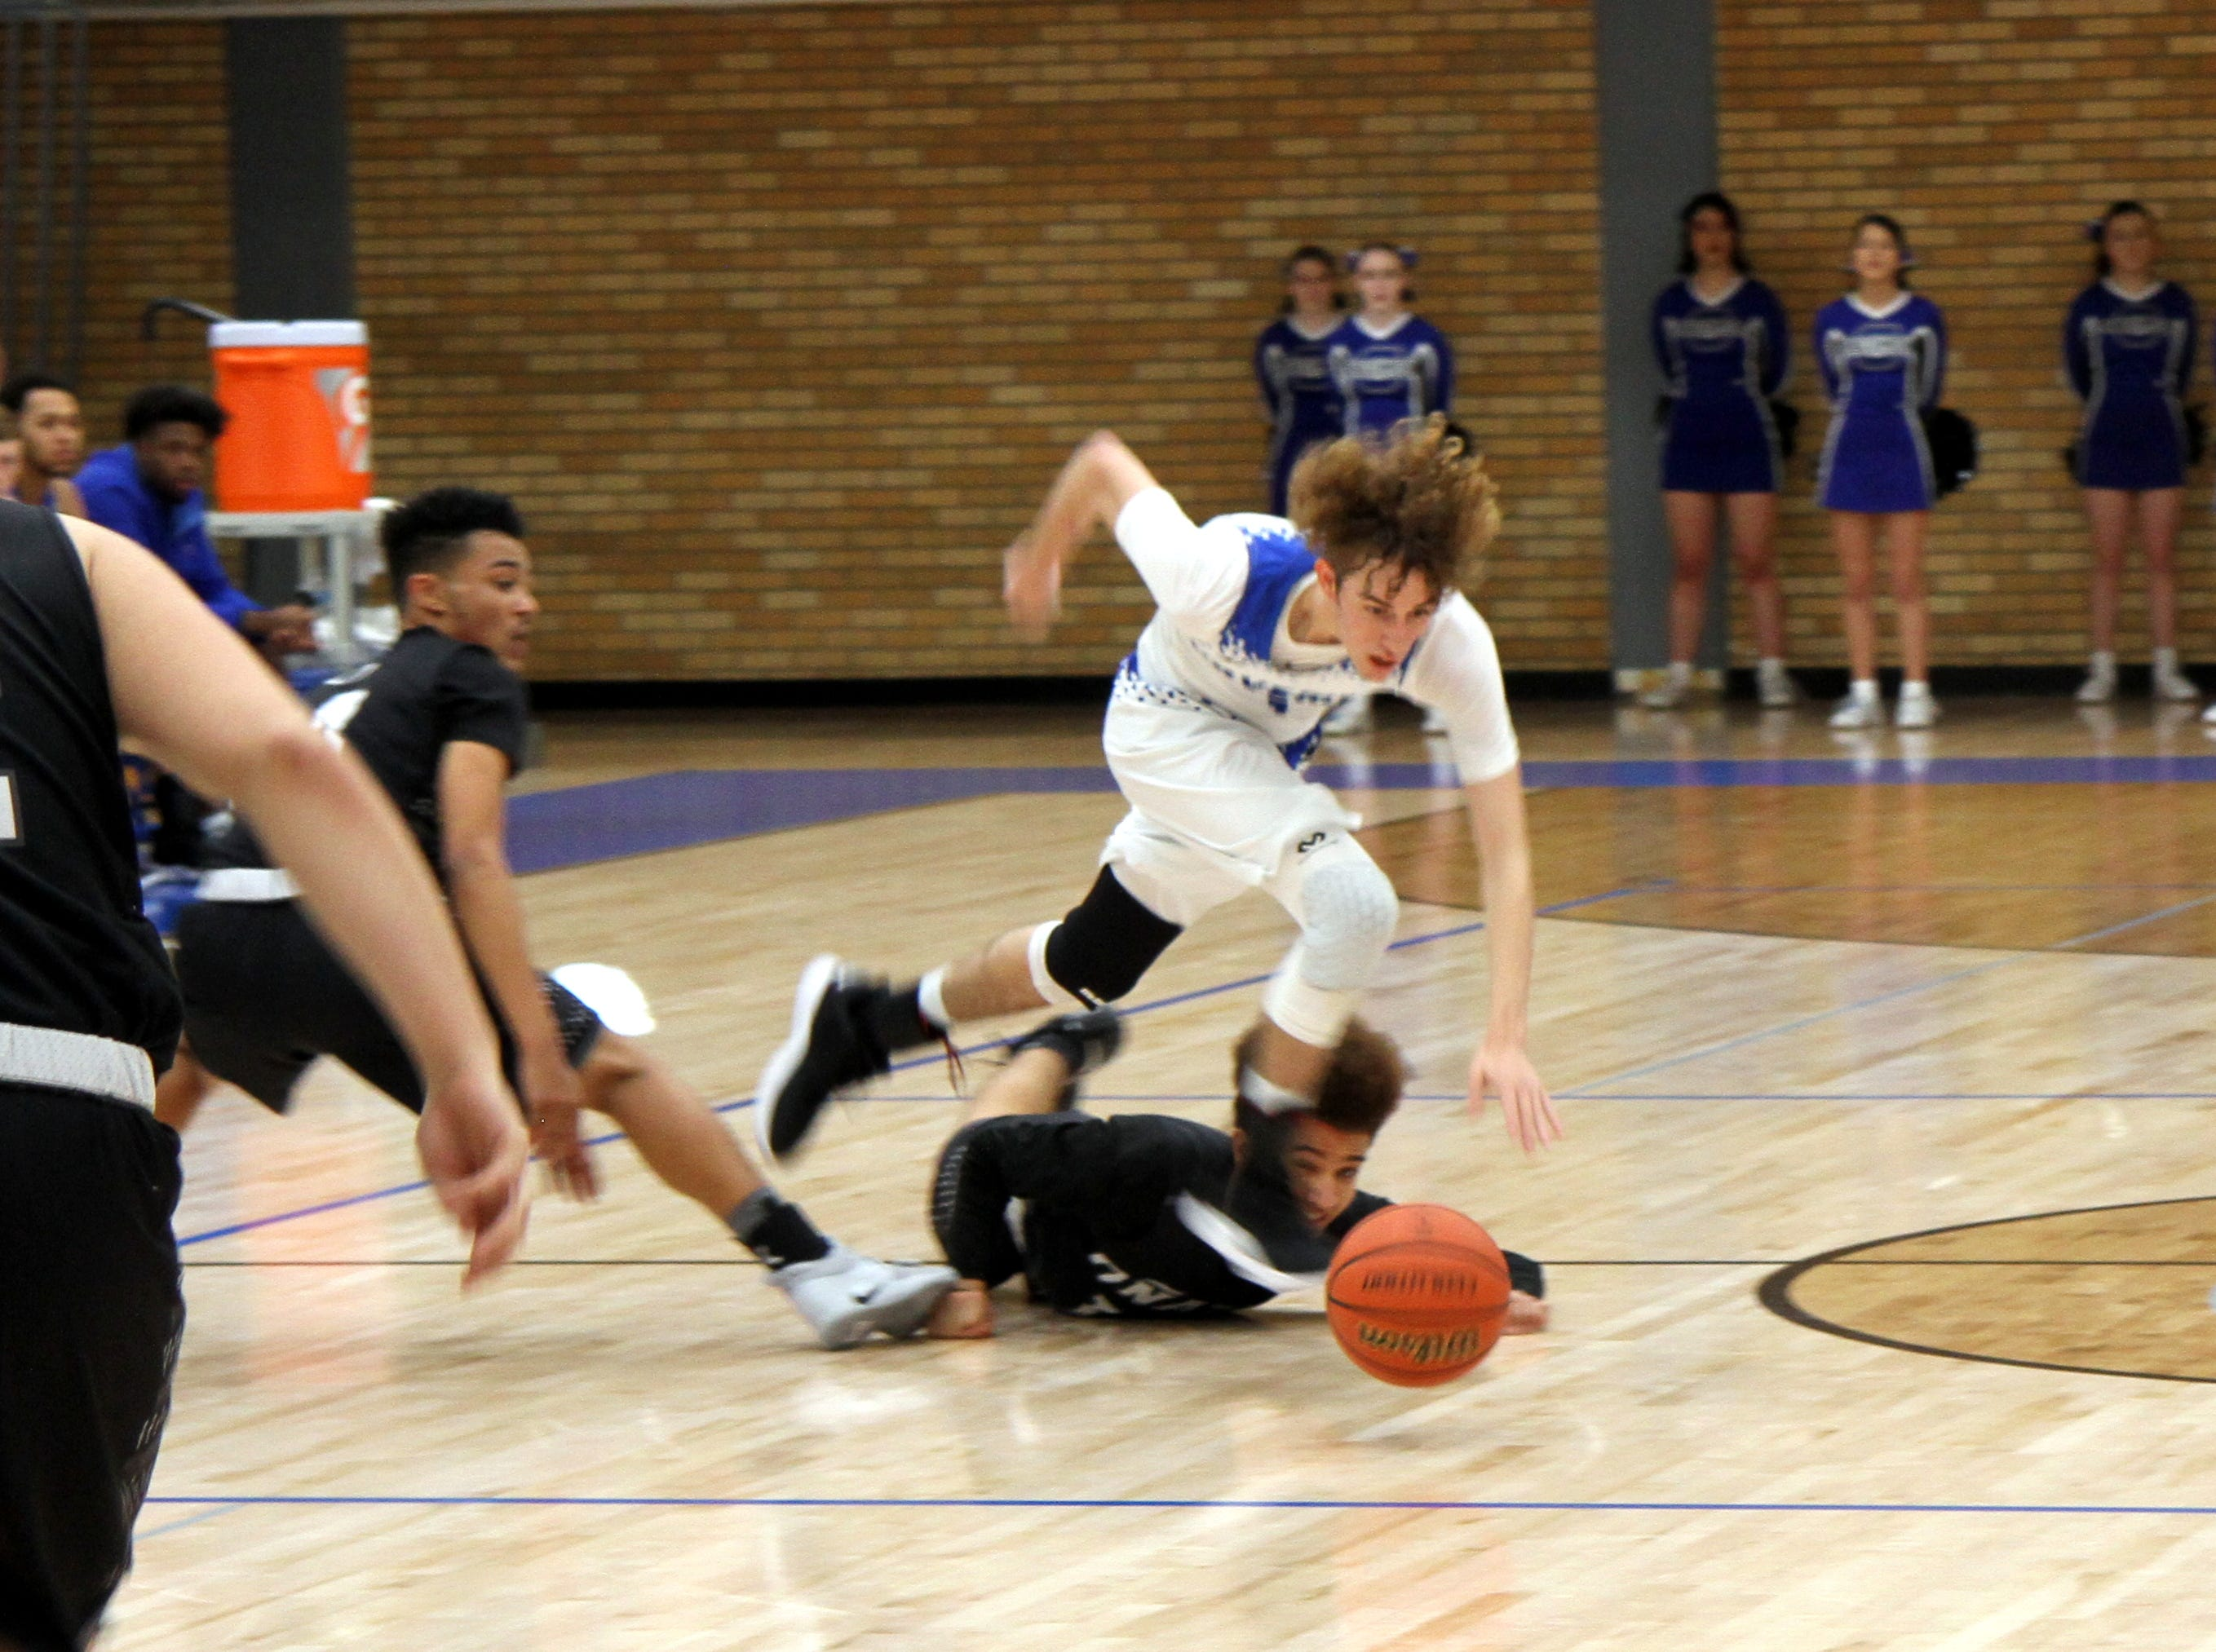 Highlights from Carlsbad's home game against Onate on Dec. 22, 2018.